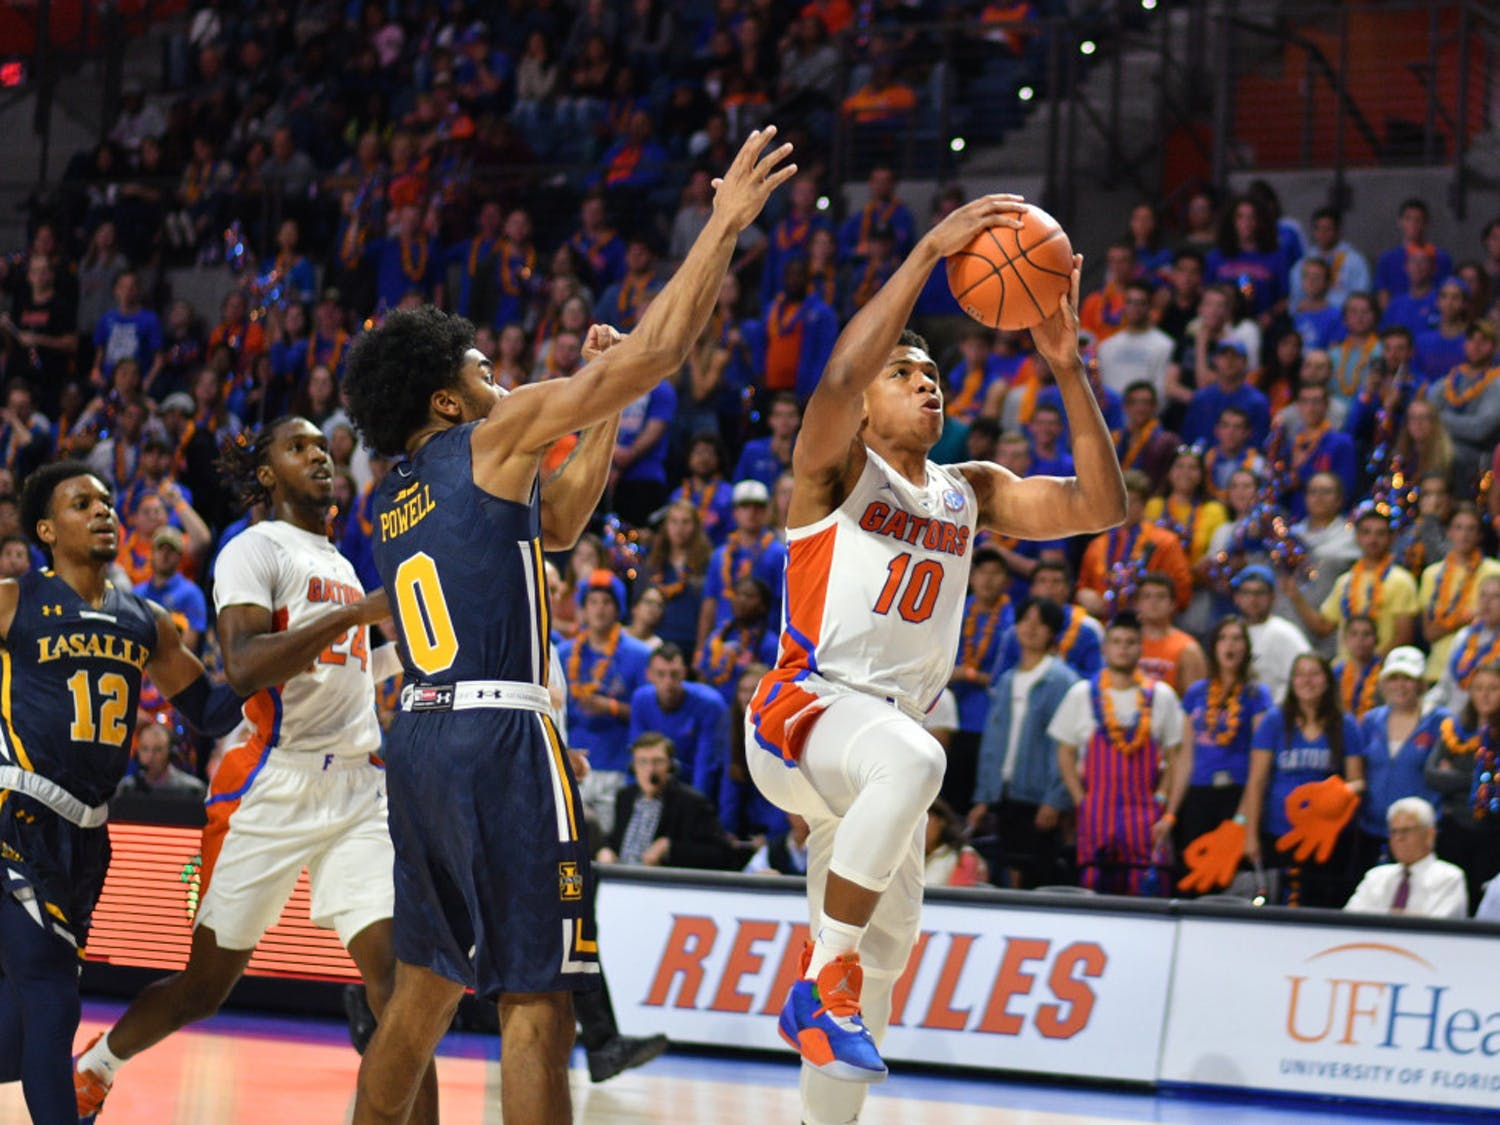 Guard Noah Locke (10) started instead Jalen Hudson and contributed 11 points in Florida's 72-49 win over Stanford.